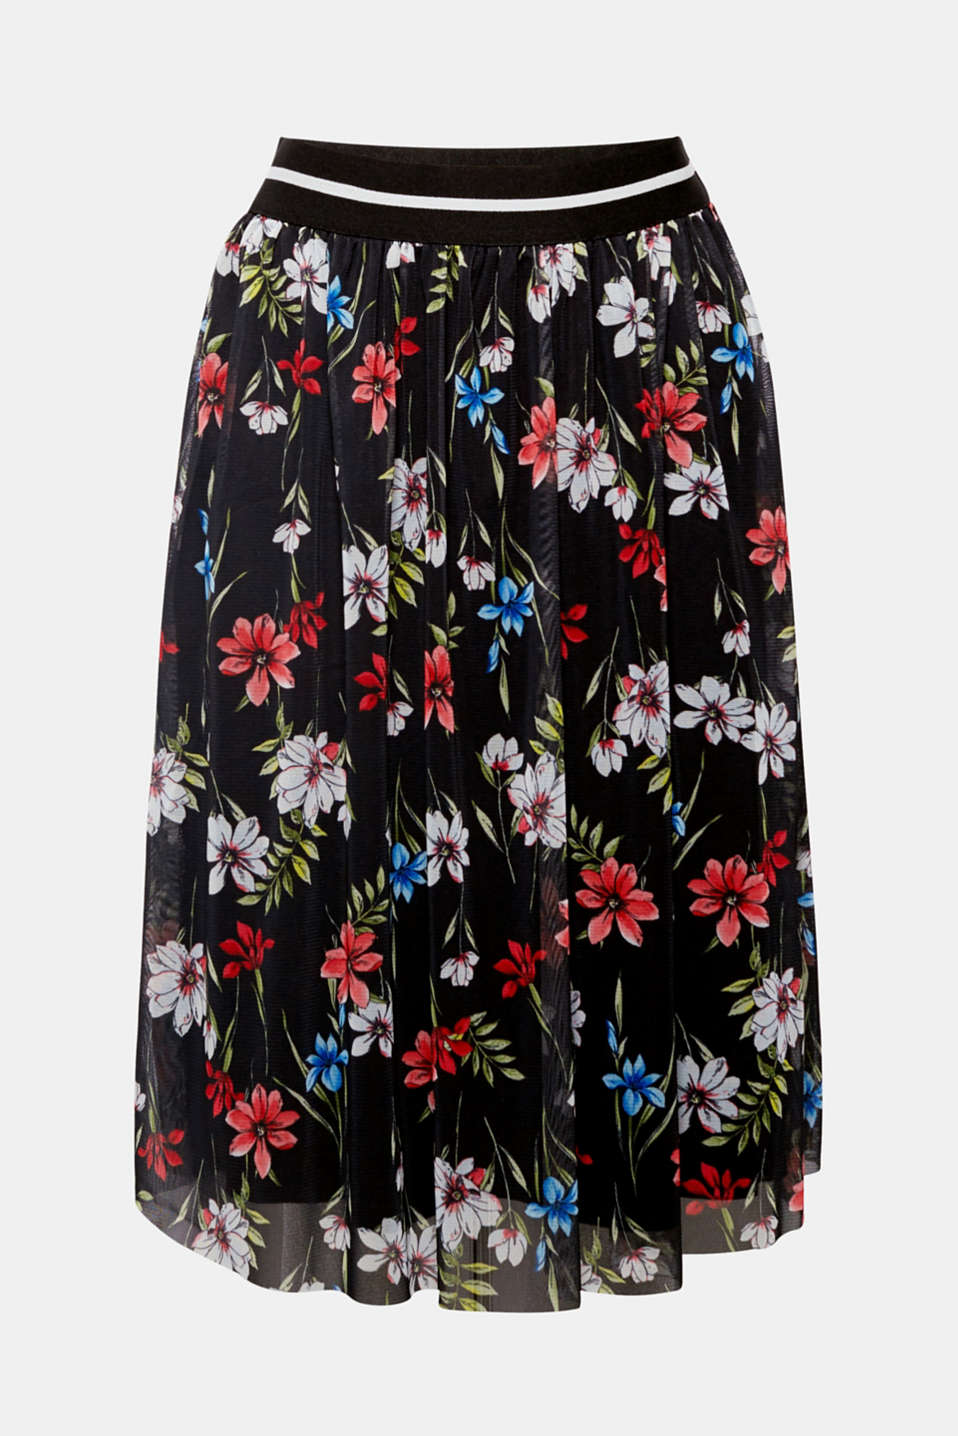 Your perfect summer skirt – with colourful flowers on delicate tulle, a stylish, swirling midi-length design and a comfortable elasticated waistband!